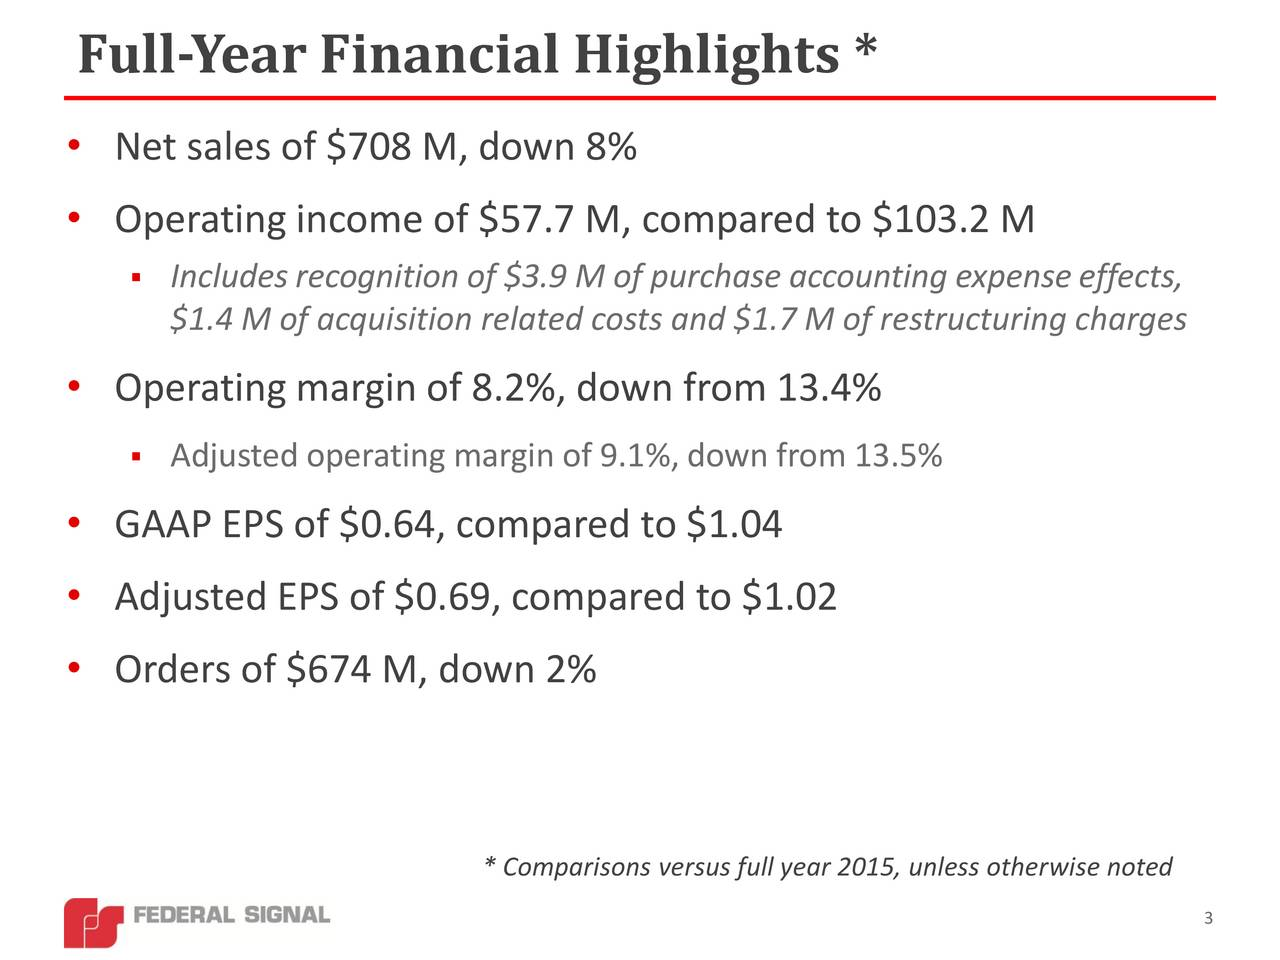 Net sales of $708 M, down 8% Operating income of $57.7 M, compared to $103.2 M Includes recognition of $3.9 M of purchase accounting expenseeffects, $1.4 M of acquisition related costs and $1.7 M of restructuring charges Operating margin of 8.2%, down from 13.4% Adjusted operating margin of 9.1%, down from 13.5% GAAP EPS of $0.64, compared to $1.04 Adjusted EPS of $0.69, compared to $1.02 Orders of $674 M, down 2% * Comparisons versus full year 2015, unless otherwise noted 3